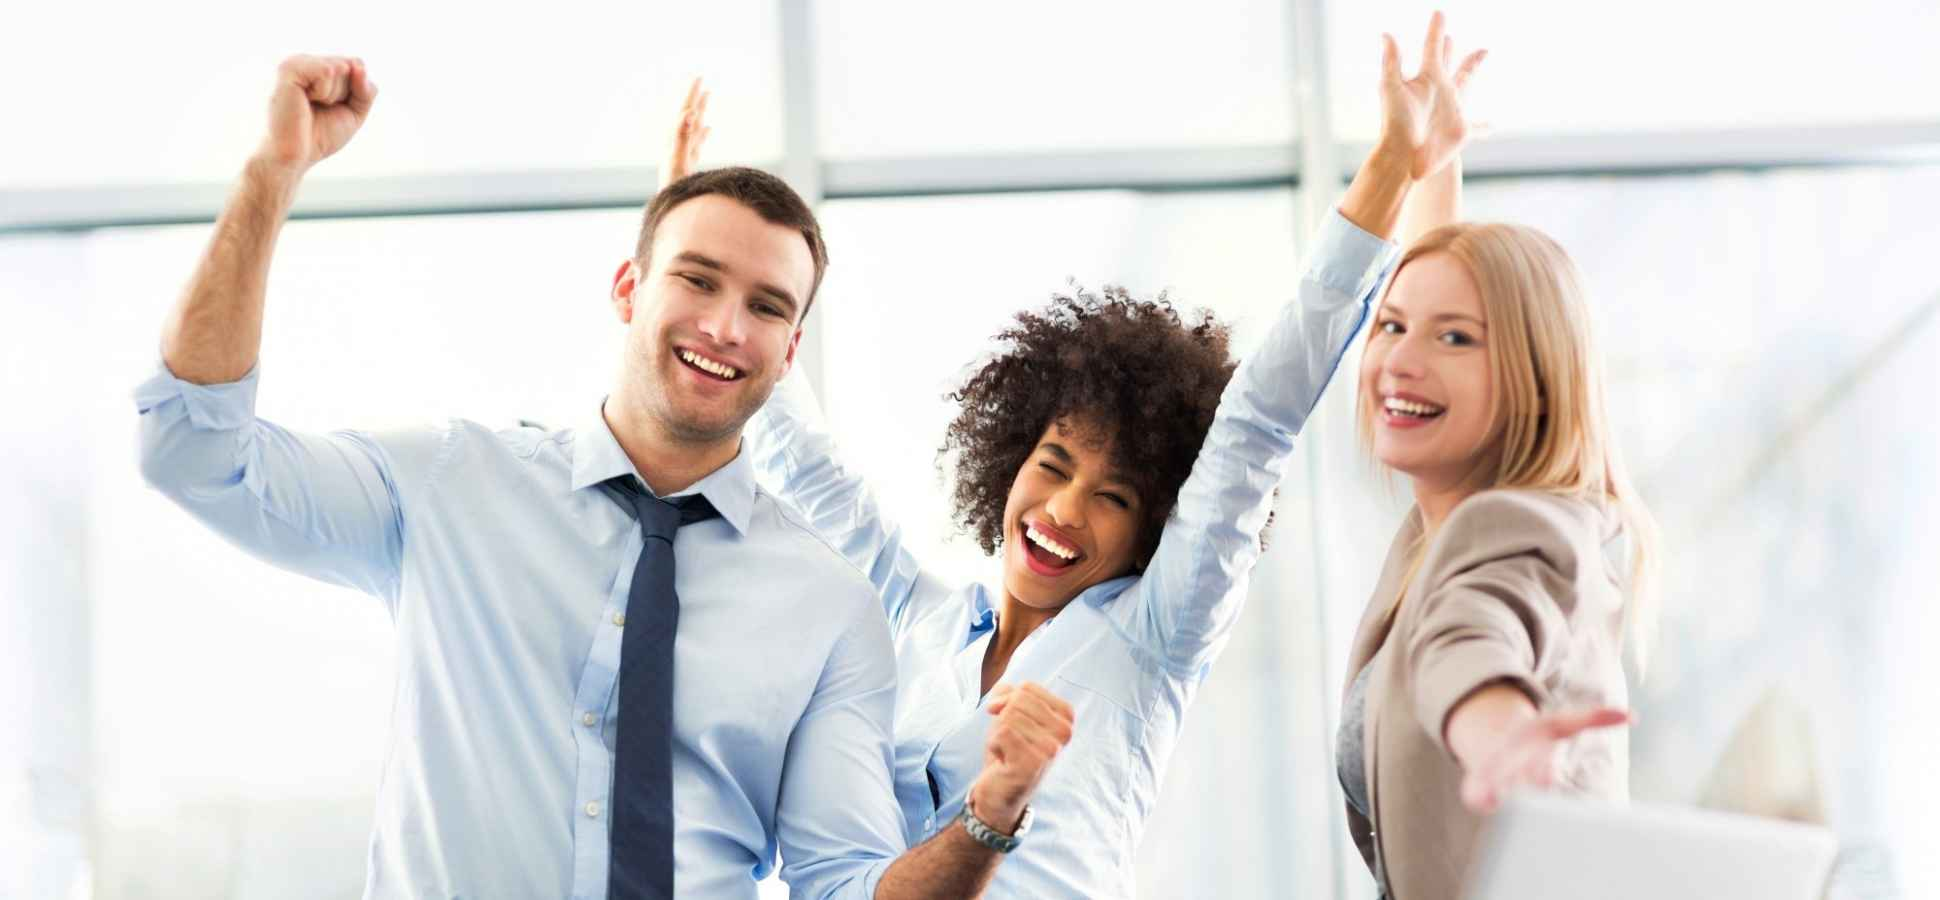 3 Things Great Leaders Do That Achieve Amazing Results